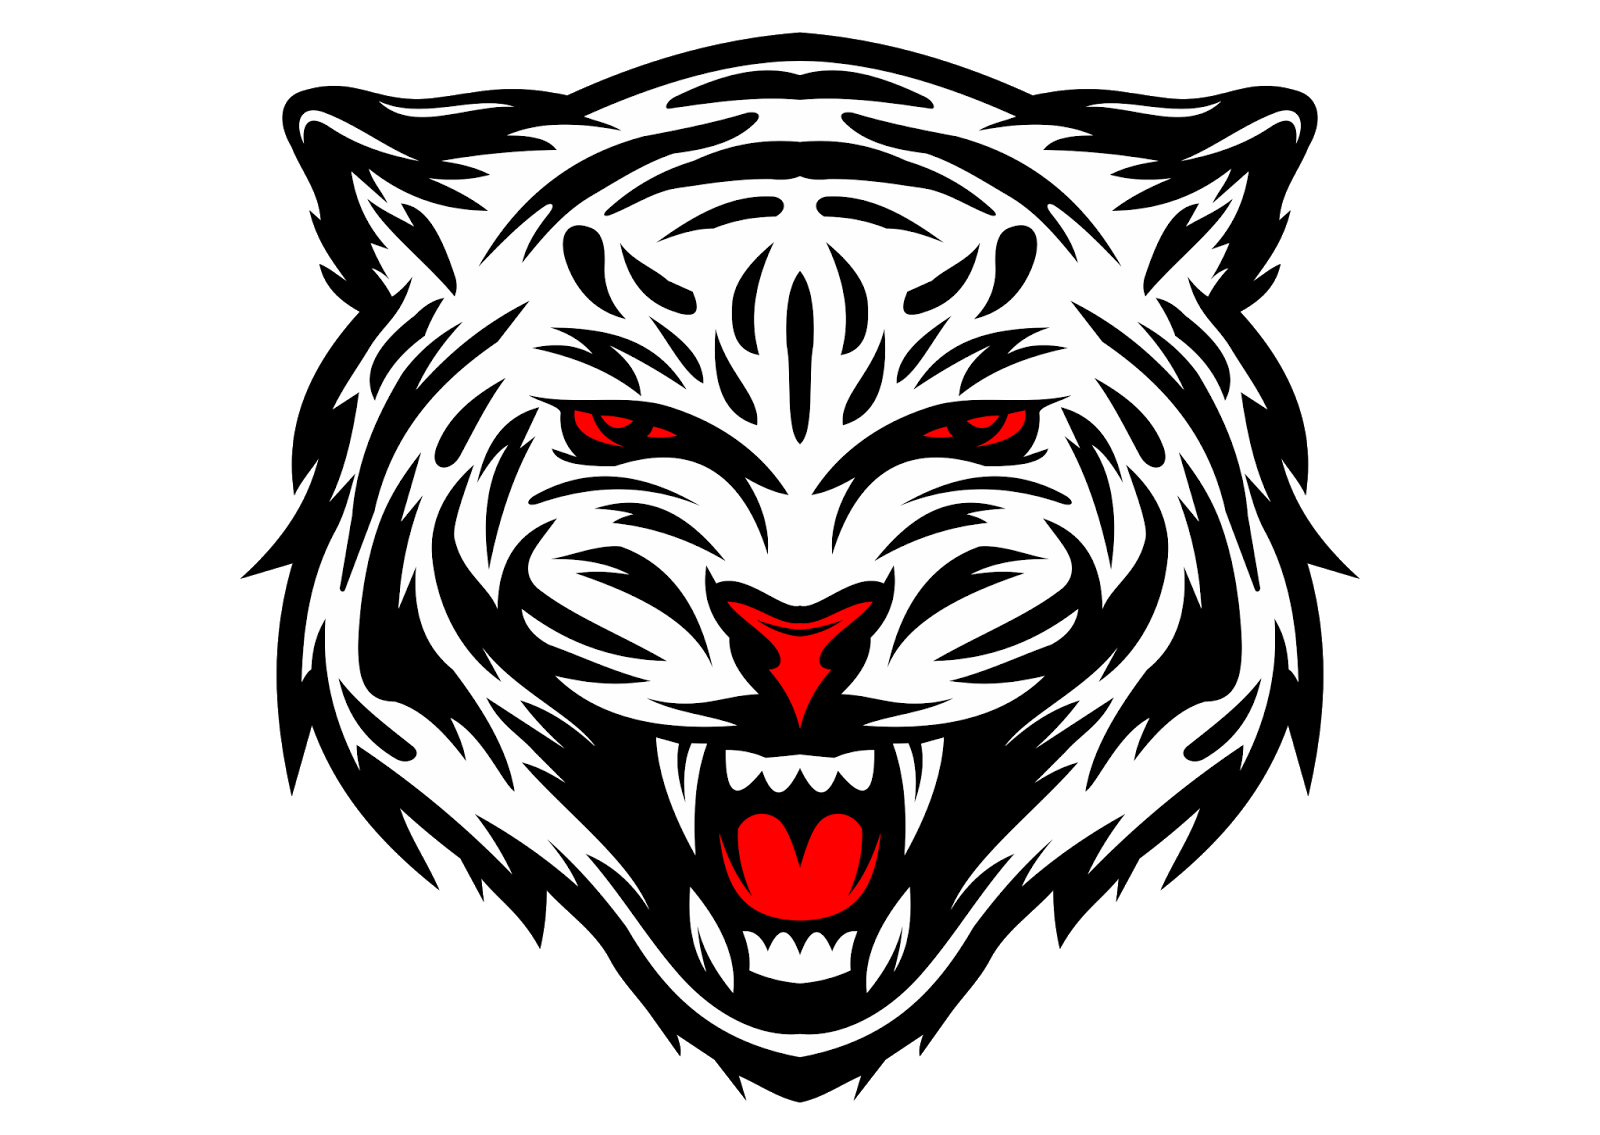 Logo Macan Png 5 Png Image